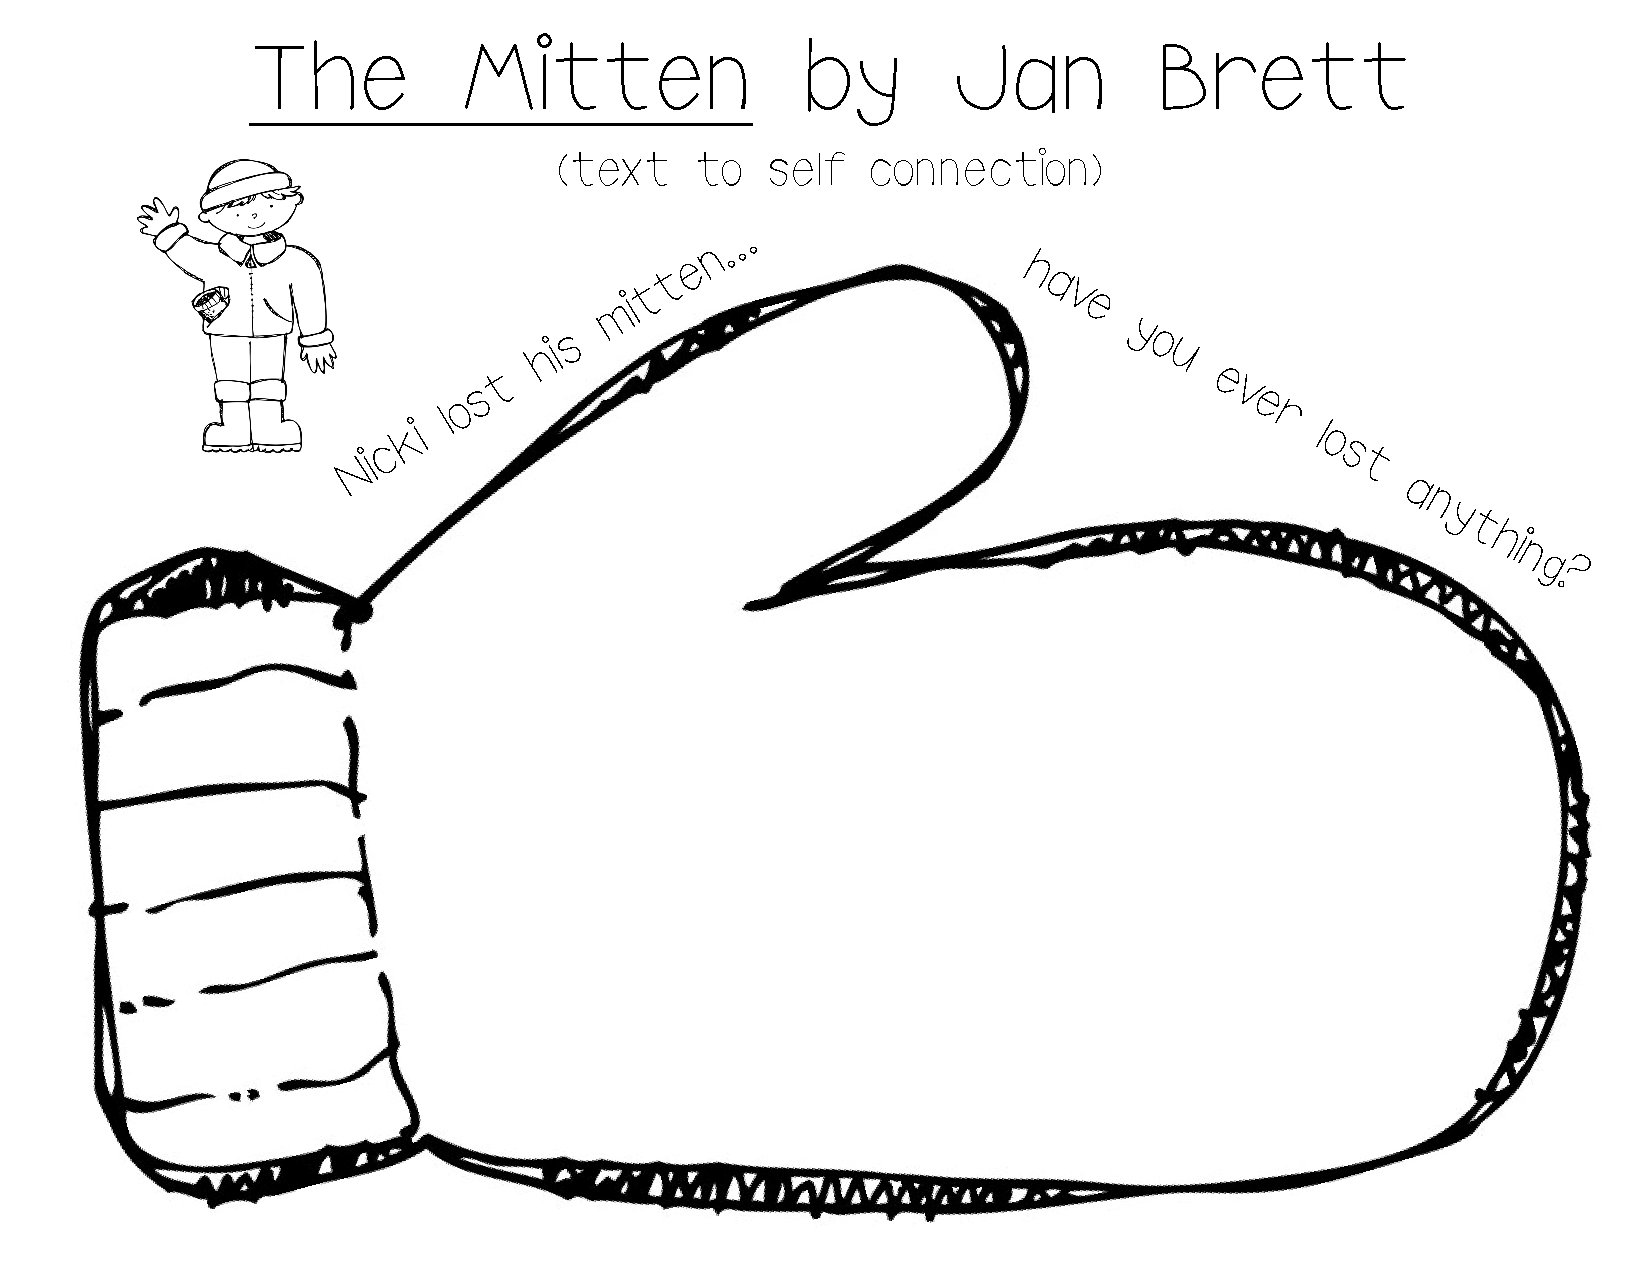 The Mitten is something grades 3rd to 5th can use to learn